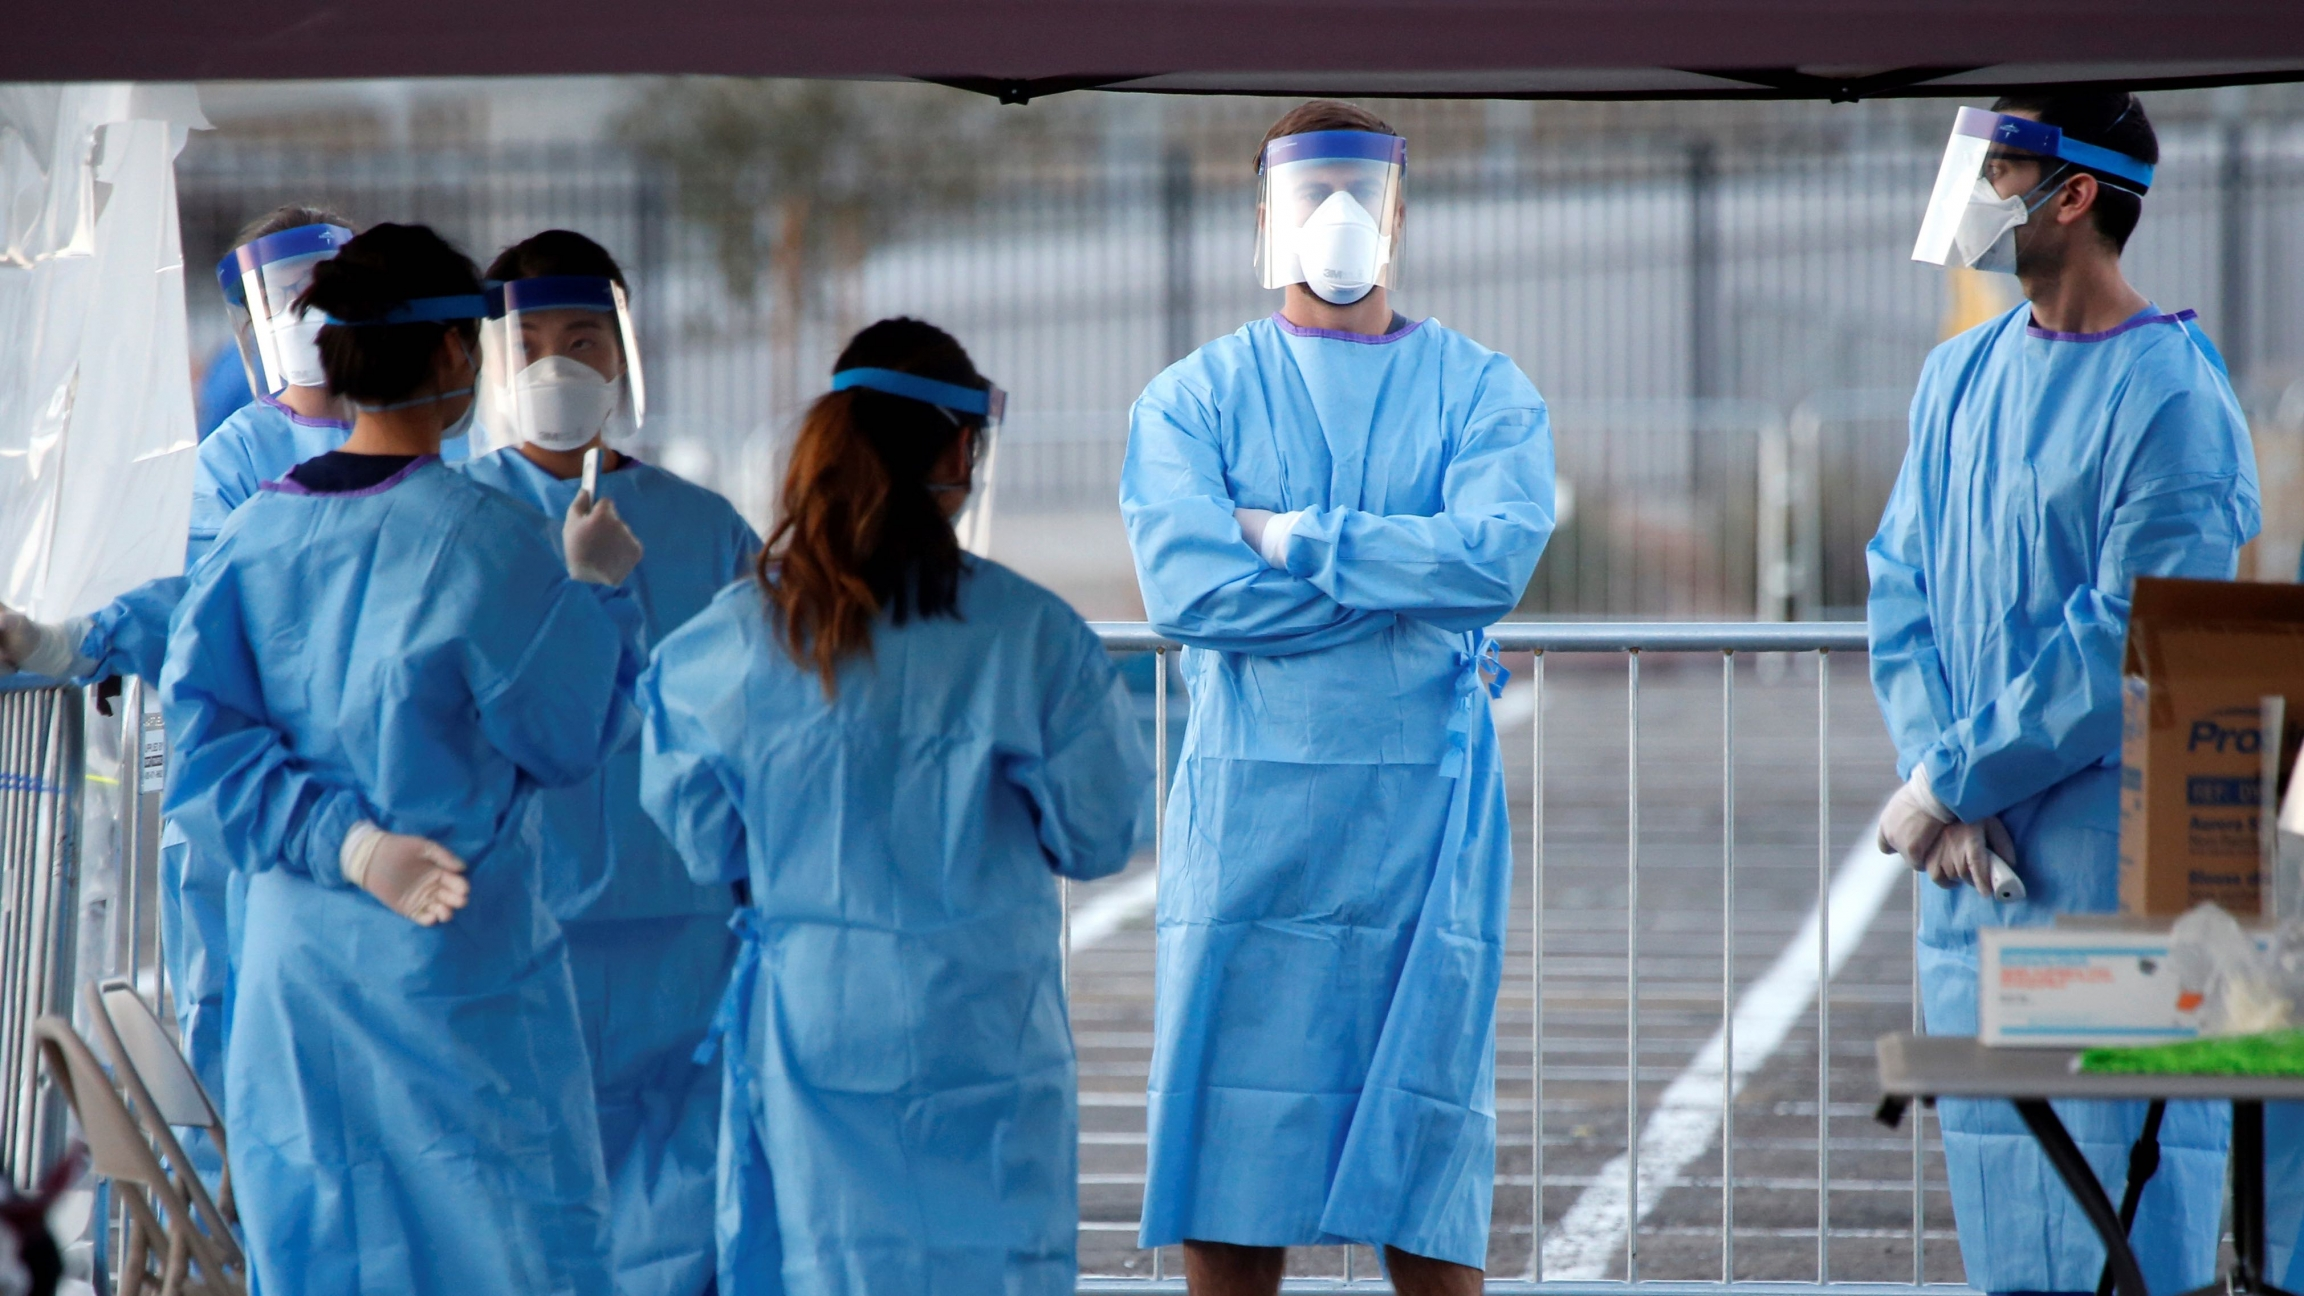 Medical students and physician assistants from Touro University Nevada wait to screen people in a temporary parking lot shelter at Cashman Center, with spaces marked for social distancing to help slow the spread of the coronavirus disease (COVID-19) in La